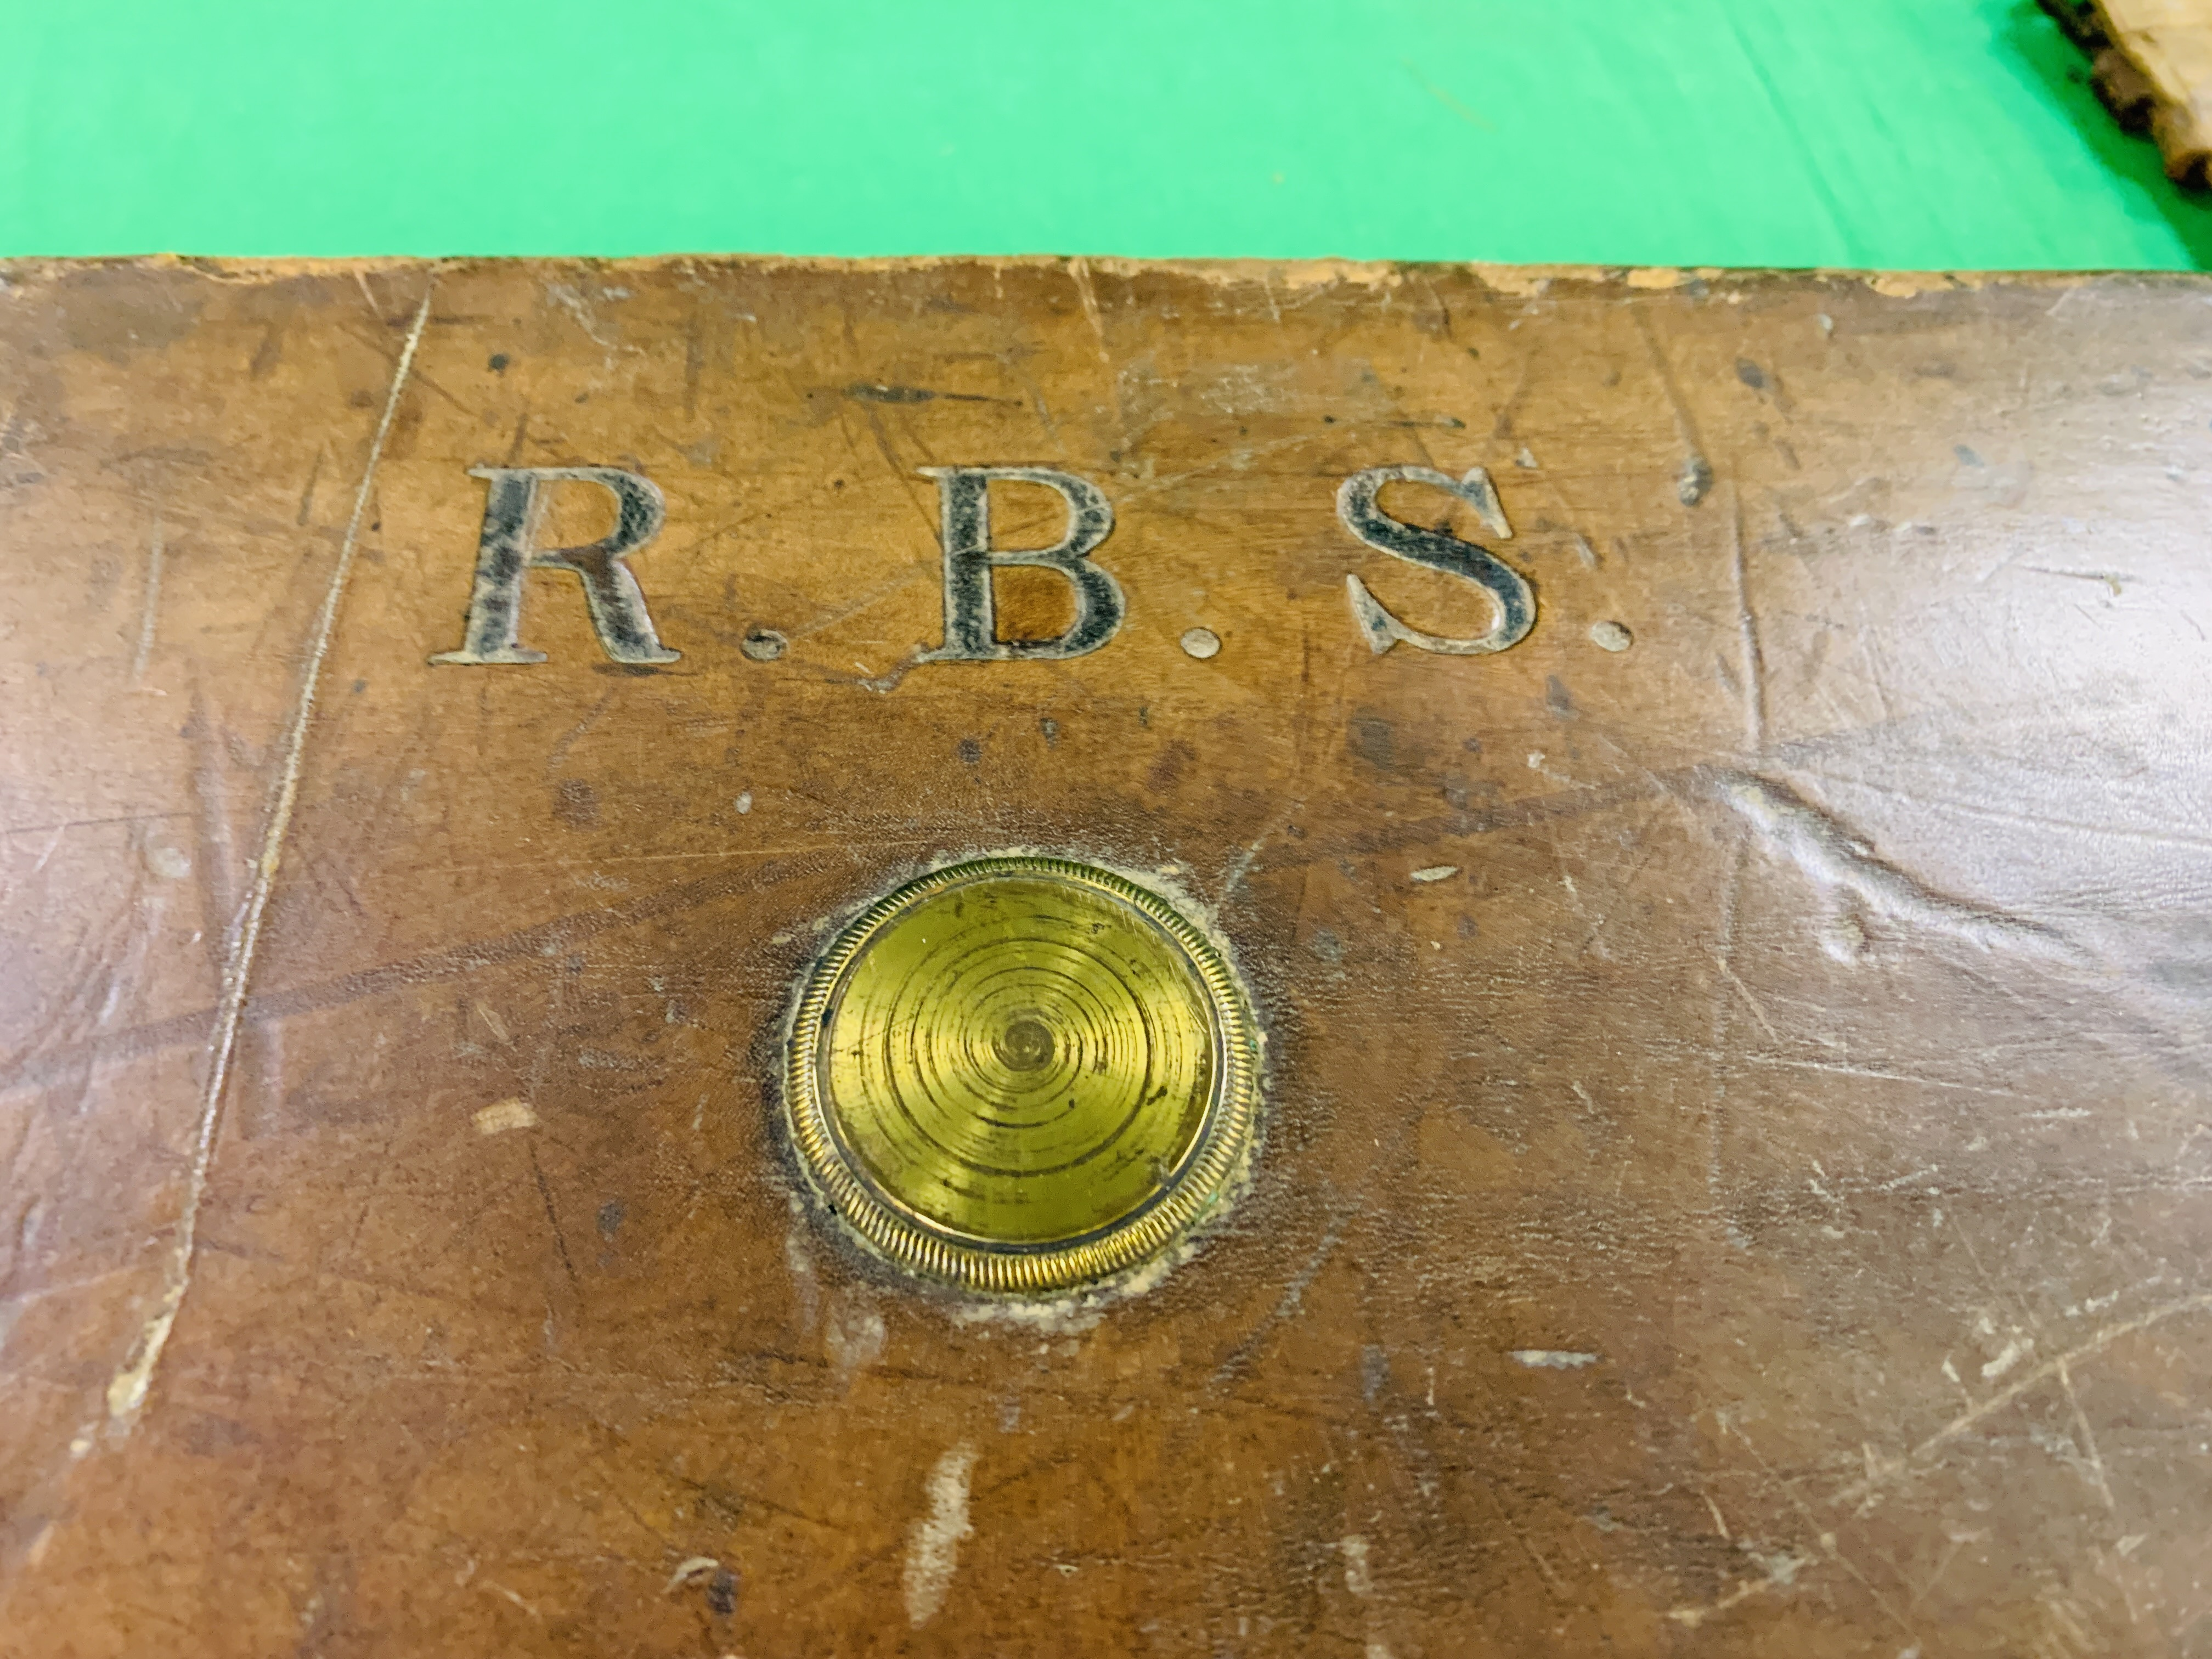 """OAK AND LEATHER 28 / 30"""" SIDE BY SIDE GUN CASE WITH B. HALLIDAY AND CO. LTD OF LONDON CASE LABEL. - Image 8 of 10"""